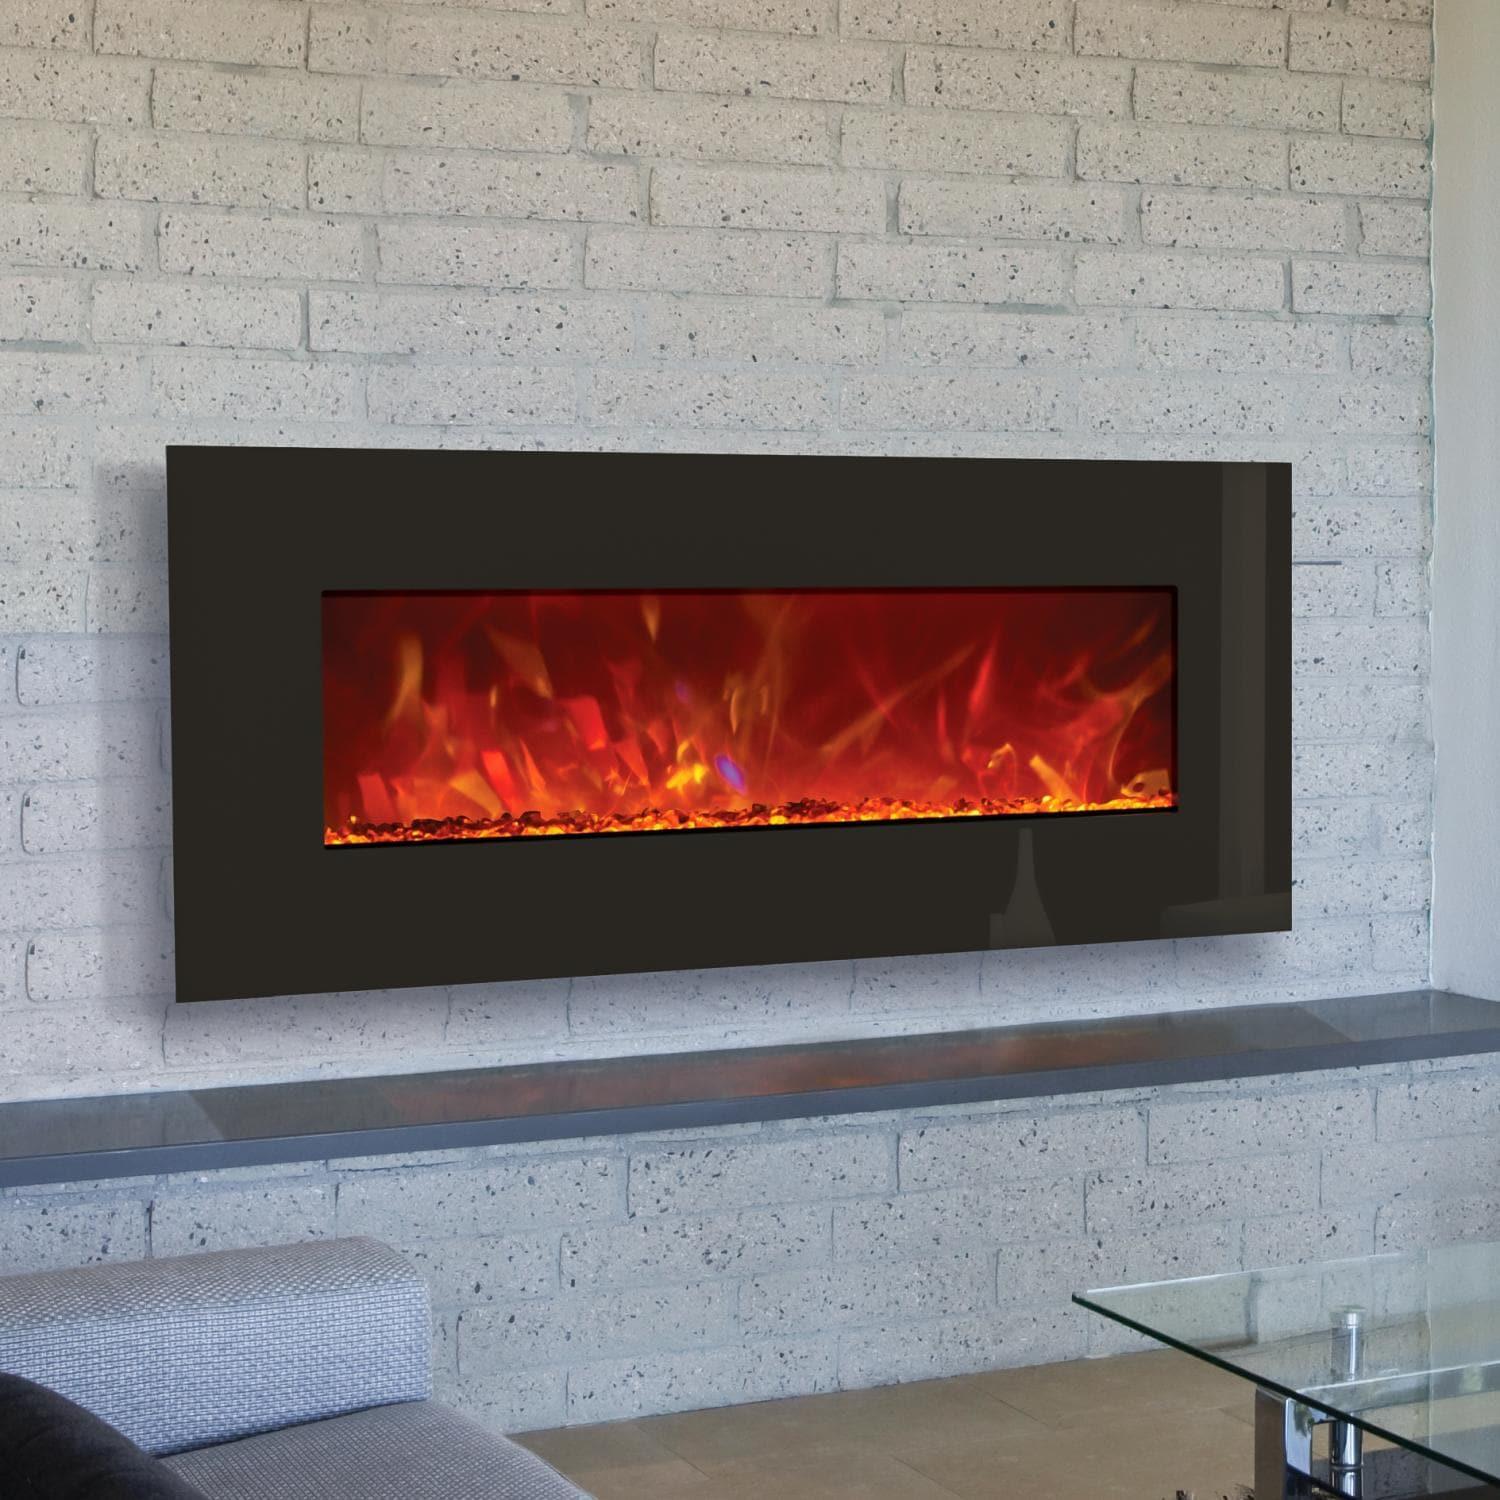 Amantii Advanced Series 43 Inch Wall Mount Built In Electric Fireplace Black Glass Wm Bi 43